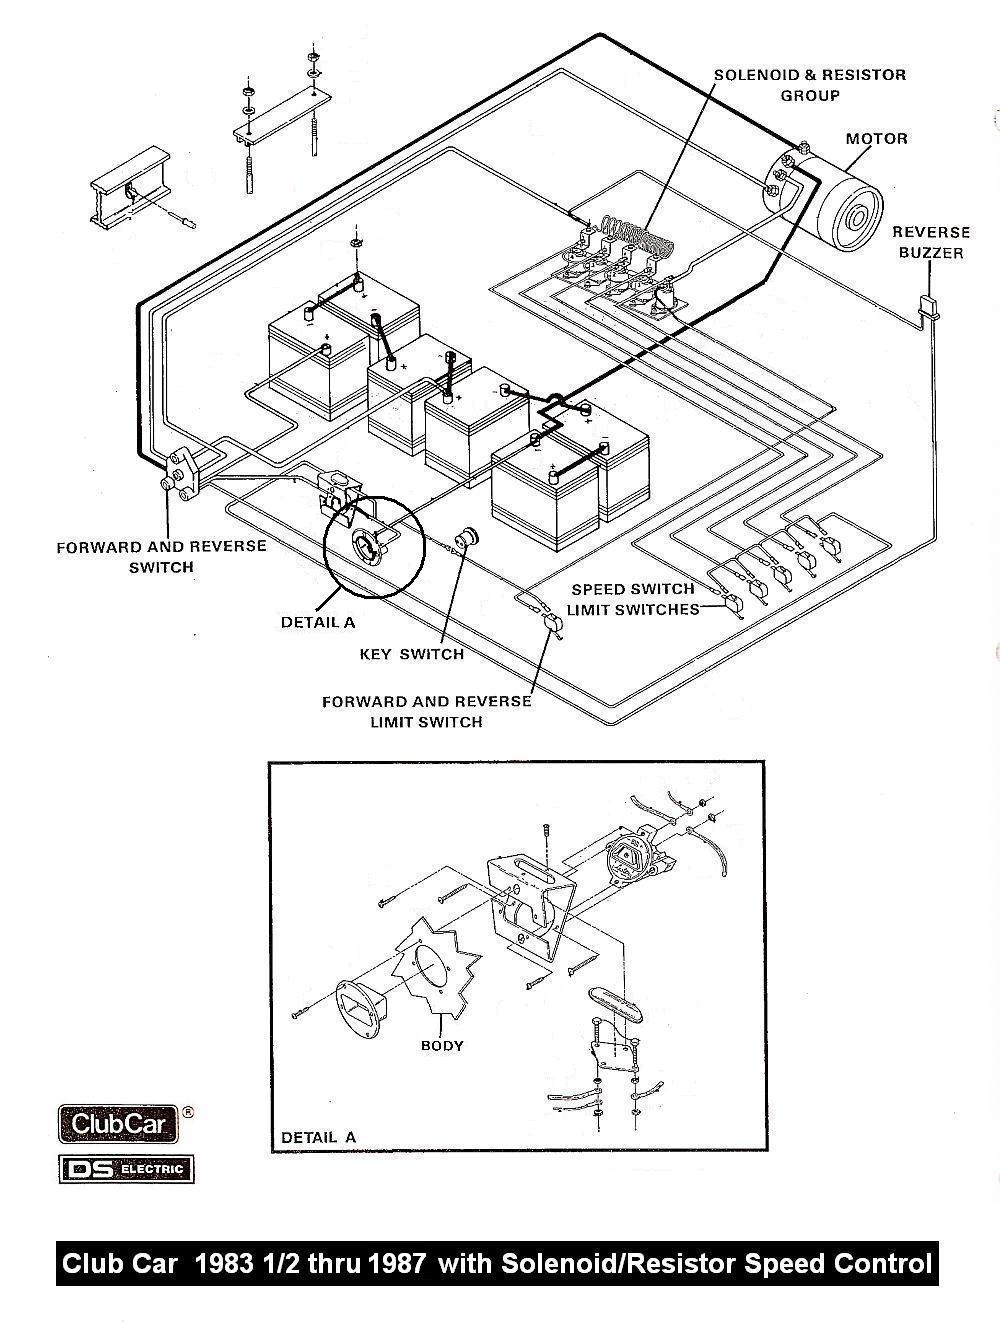 hight resolution of 1979 club car schematic diagram wiring diagram sort 1979 club car solenoid wiring diagram